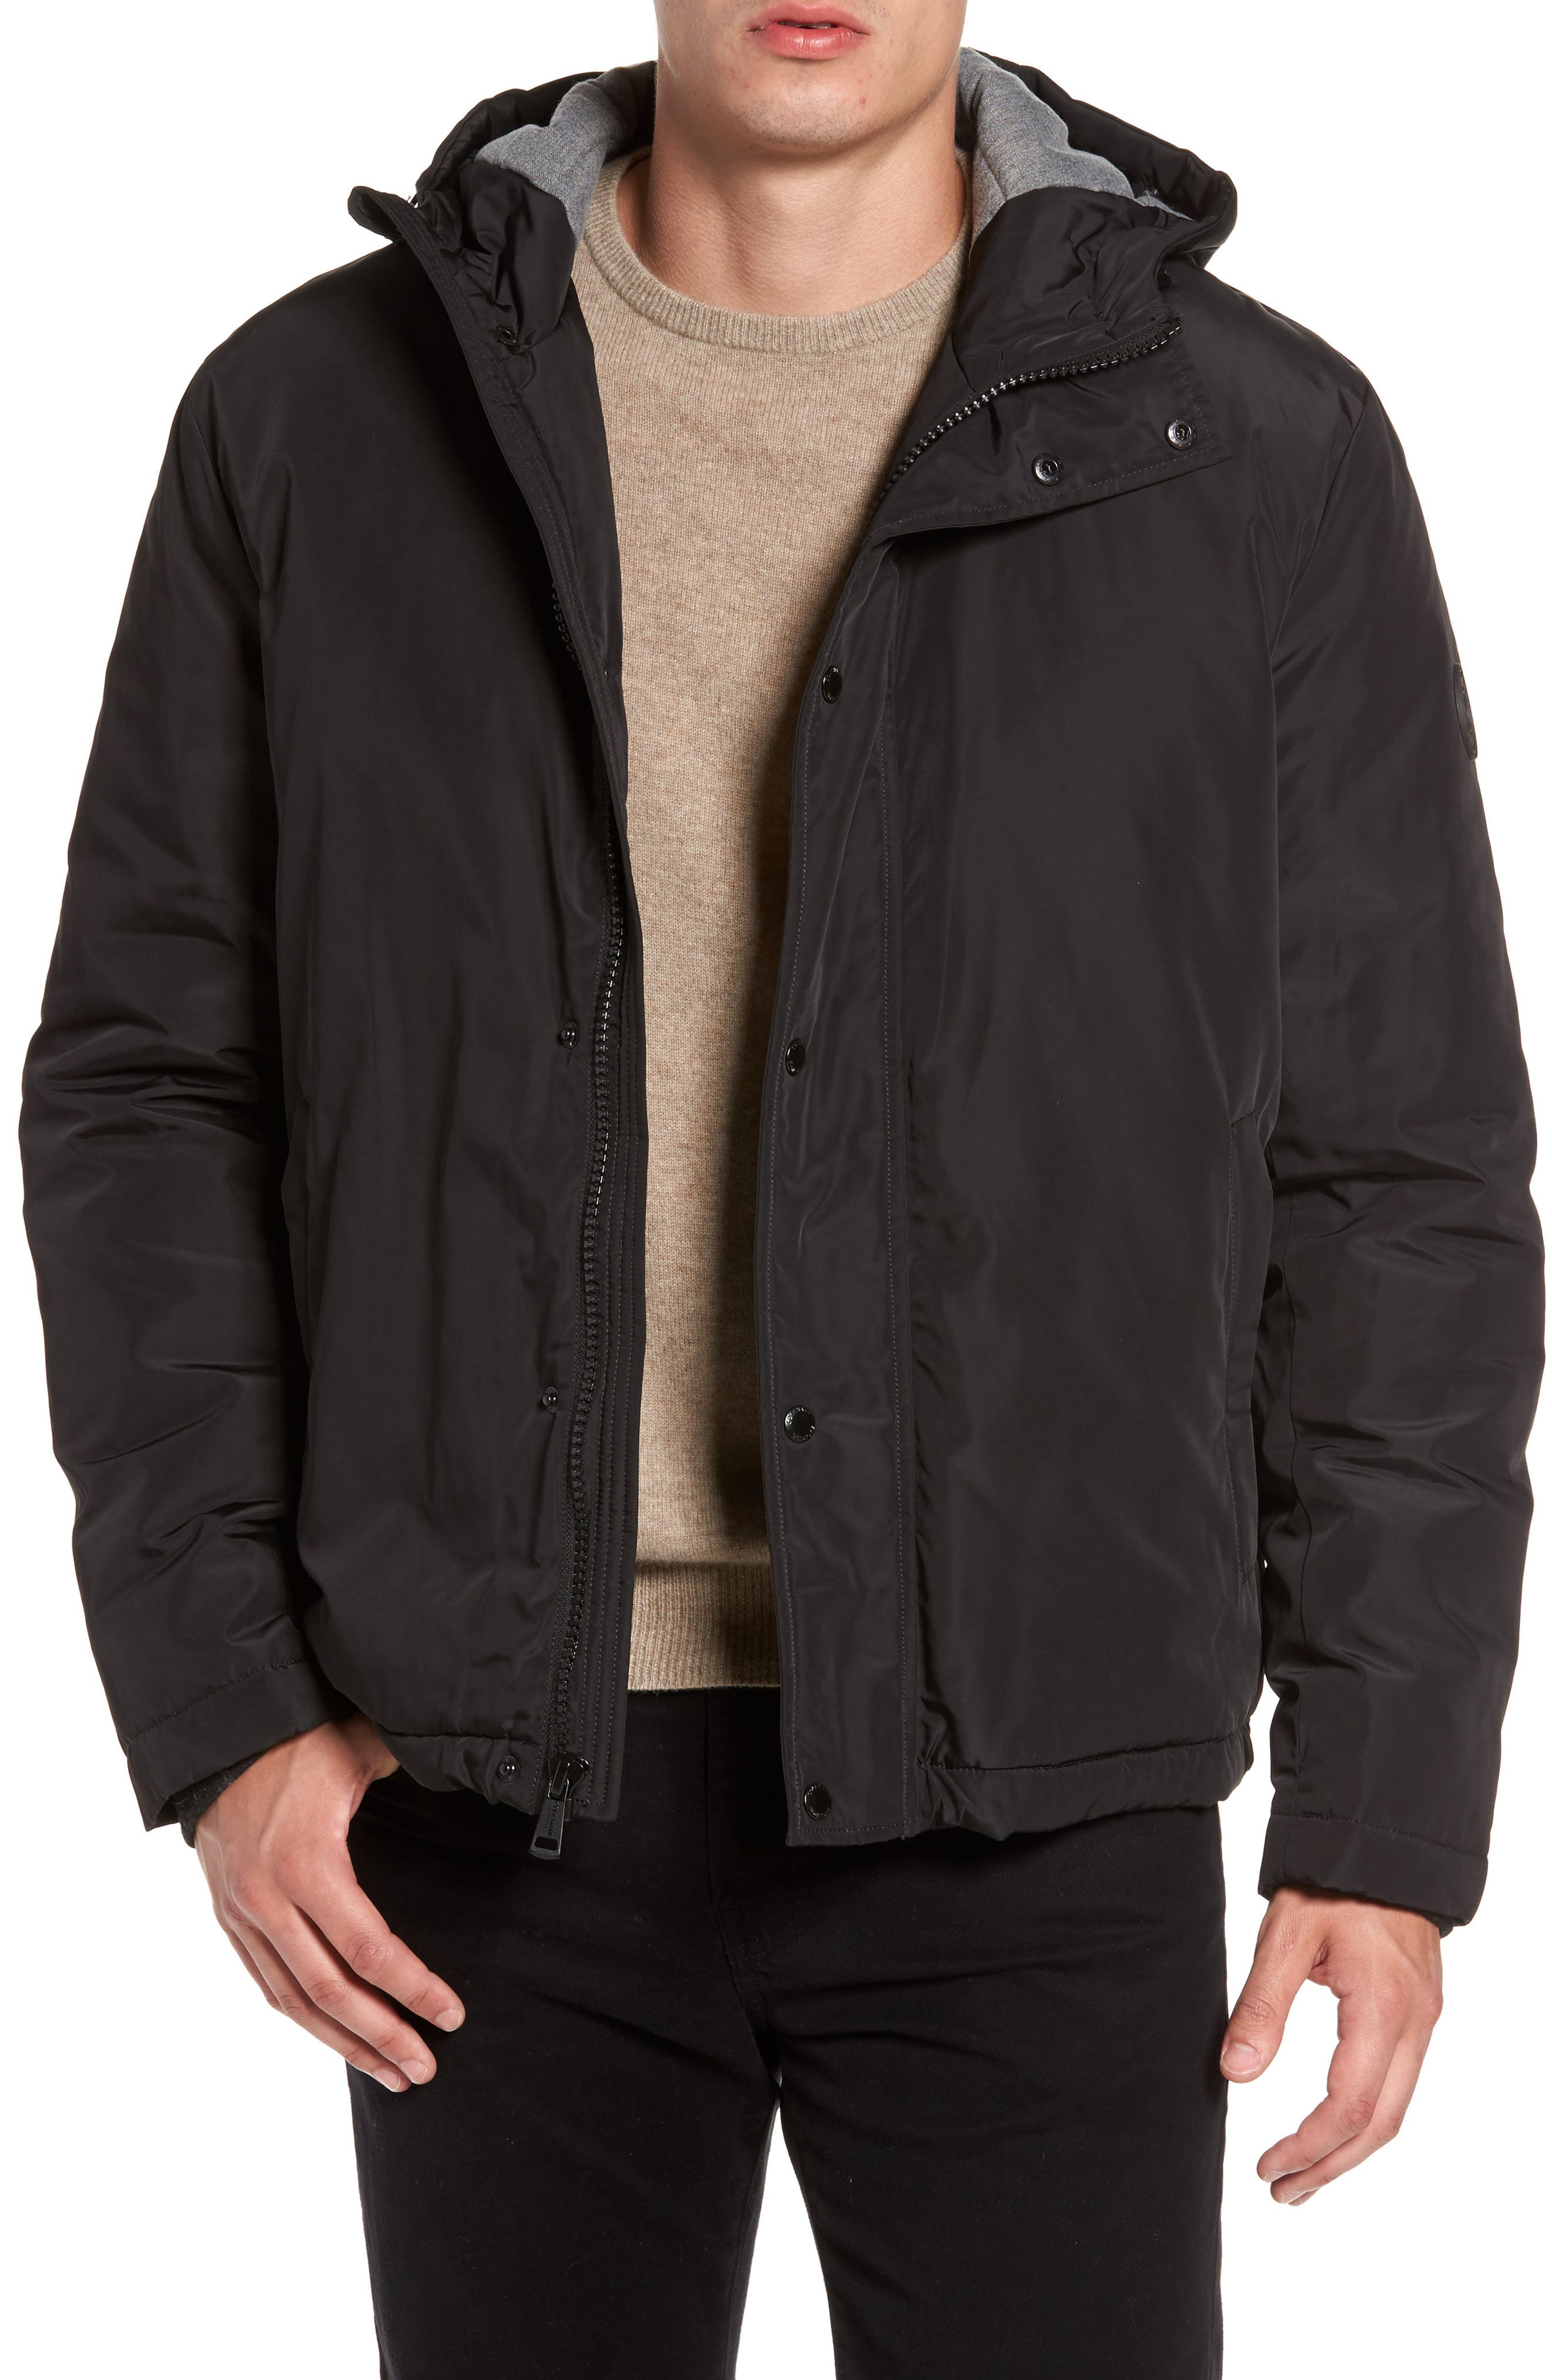 Alternate Image 1 Selected - Cole Haan Water Resistant Insulated Jacket